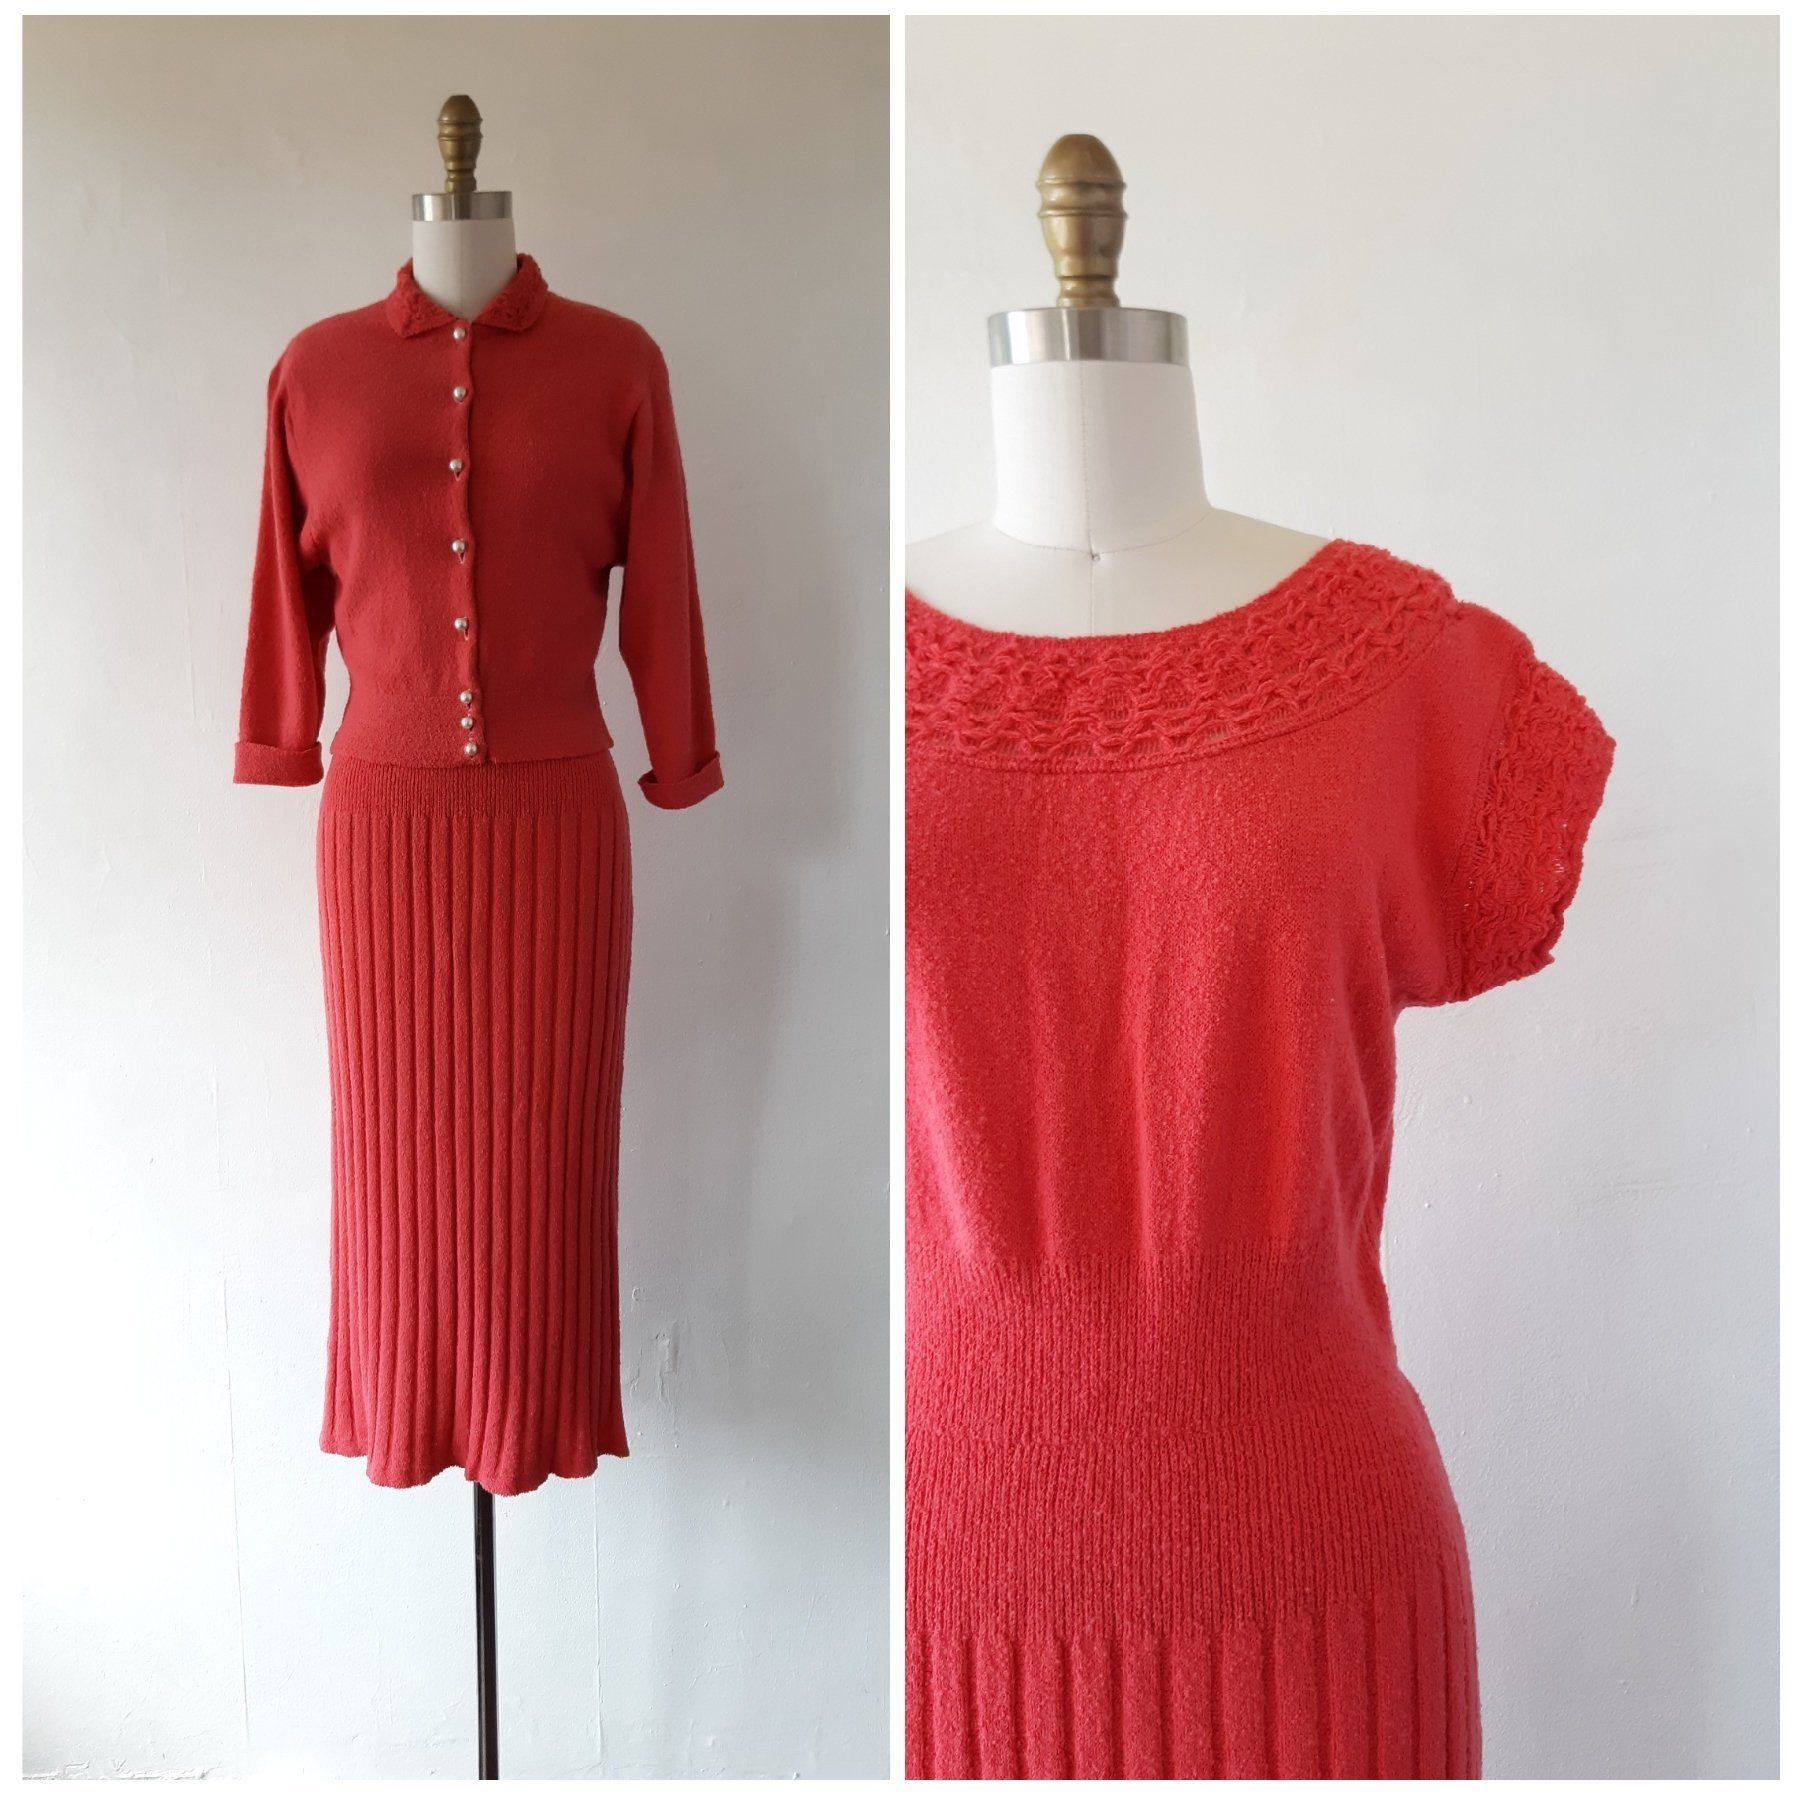 1940s Knit Dress Vintage 1940s Salmon Pink Knit Dress And Sweater Set Size Small To Medium Vintage Knitw Pink Knit Dress Vintage Knitwear Vintage Dresses